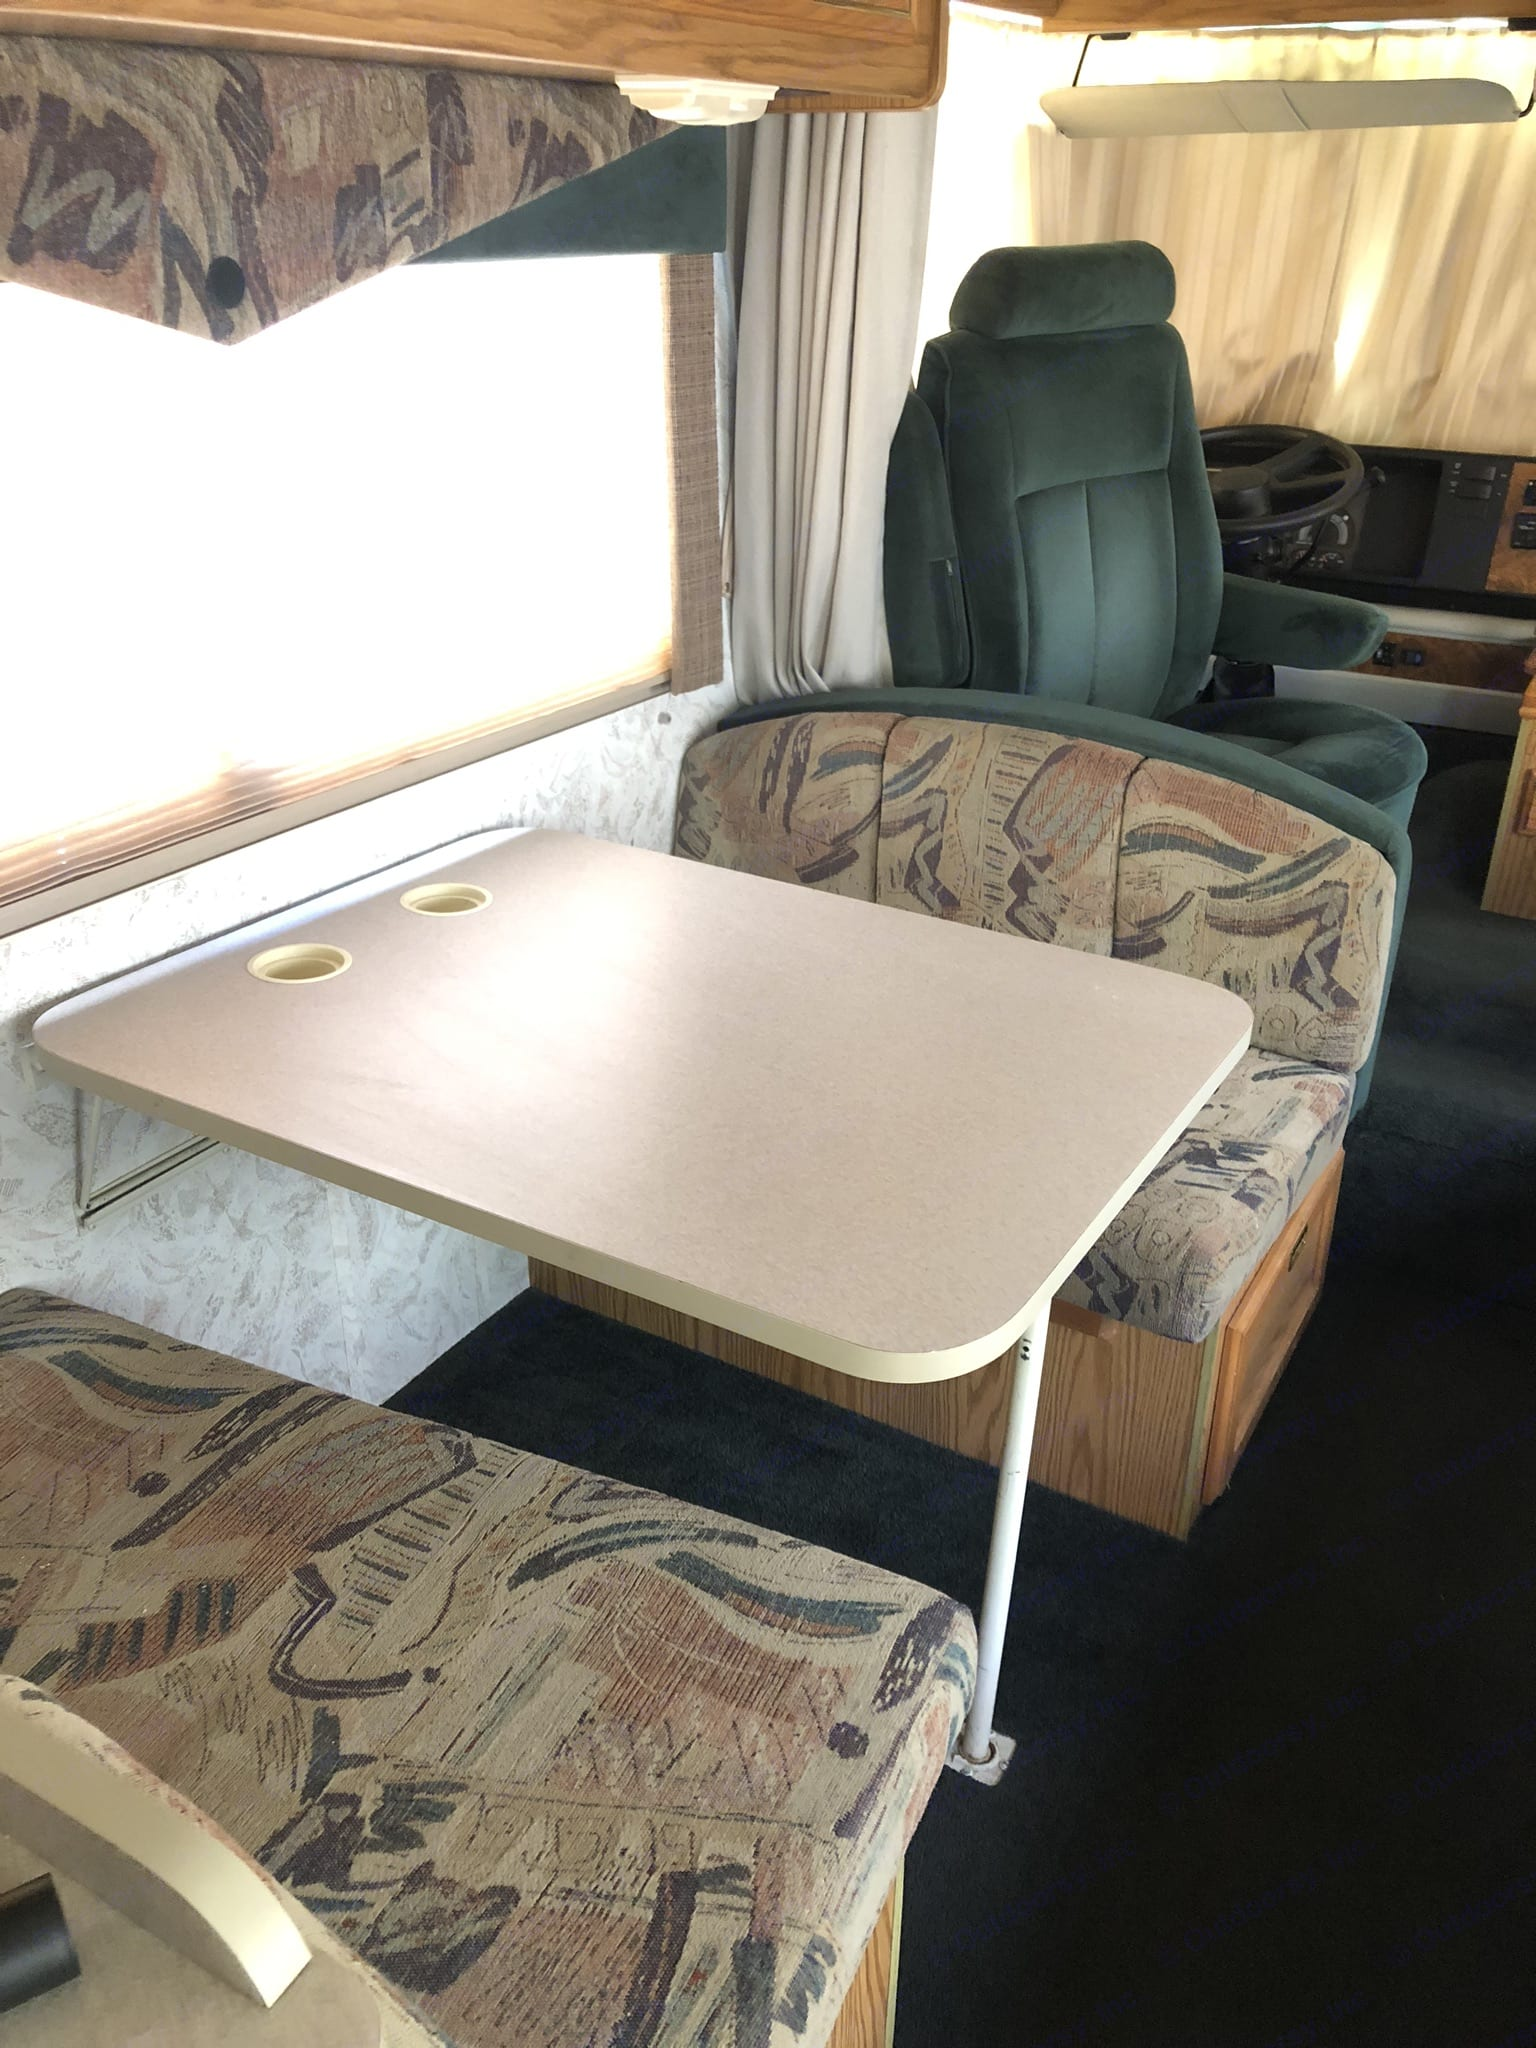 Dinette table that converts to a full size bed.. Itasca Sunrise 1997